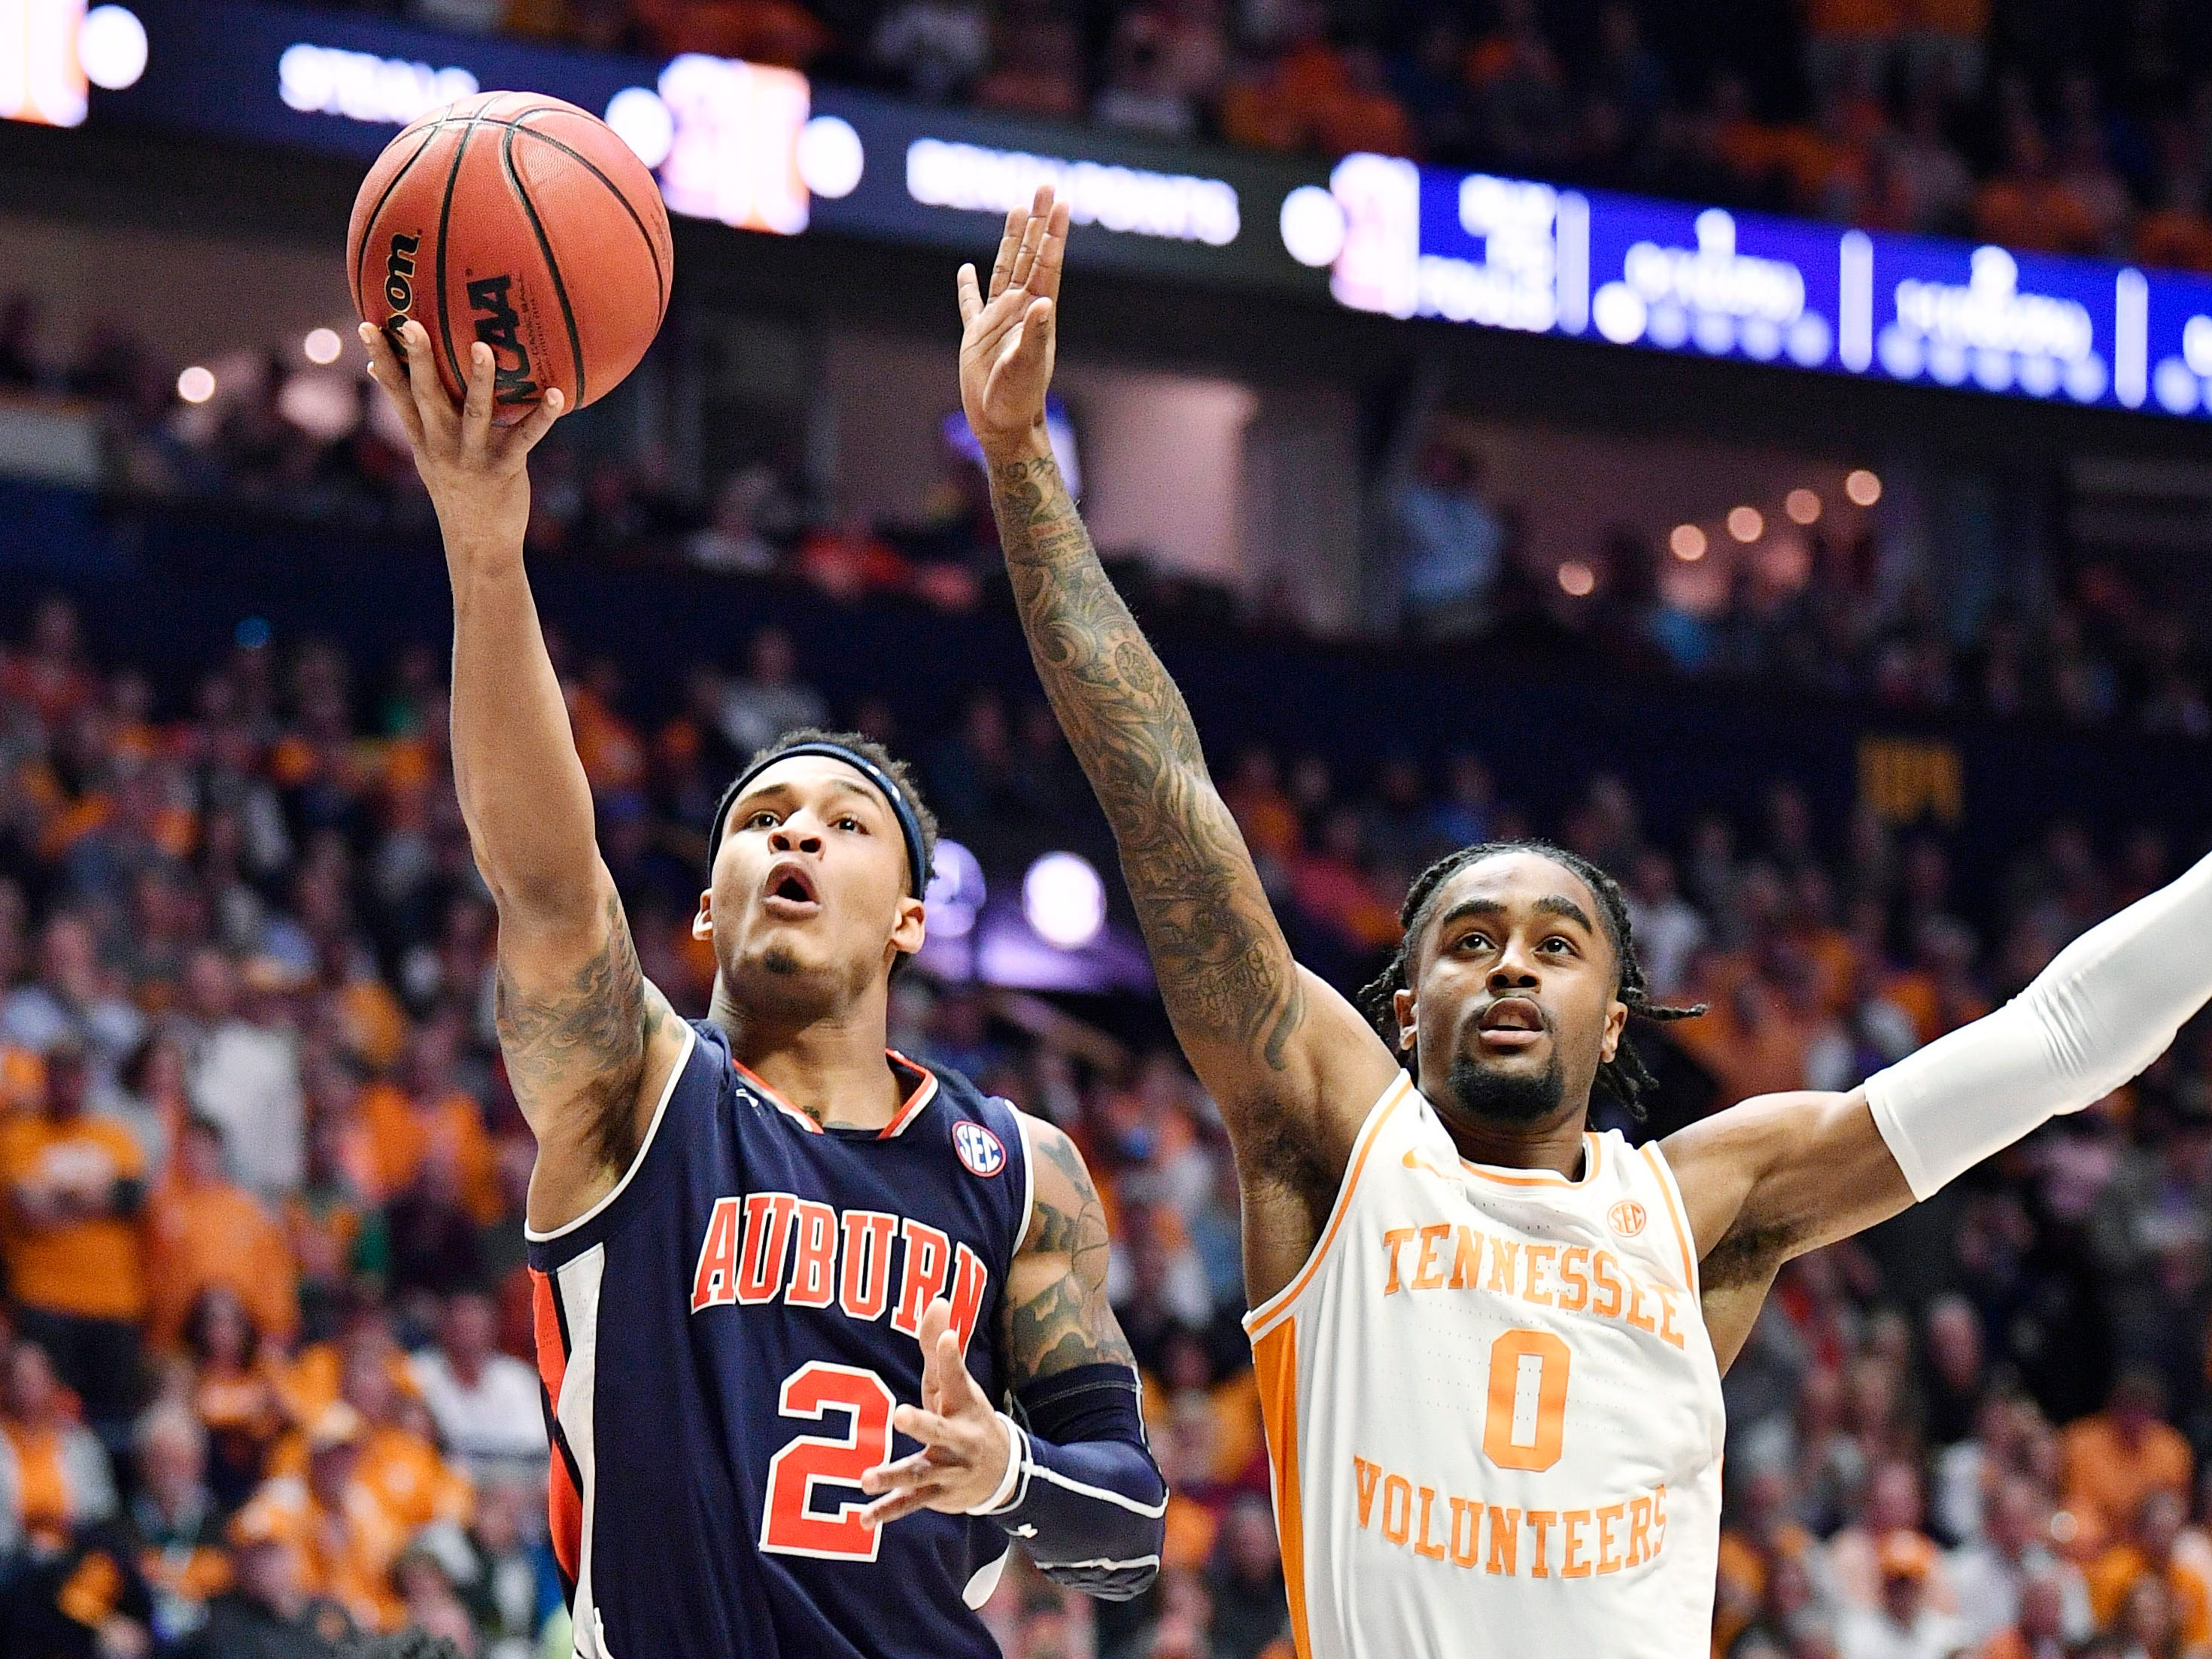 Auburn guard Bryce Brown (2) goes to the basket defended by Tennessee guard Jordan Bone (0) during the firsthalf of the SEC Men's Basketball Tournament championship game at Bridgestone Arena in Nashville, Tenn., Sunday, March 17, 2019.